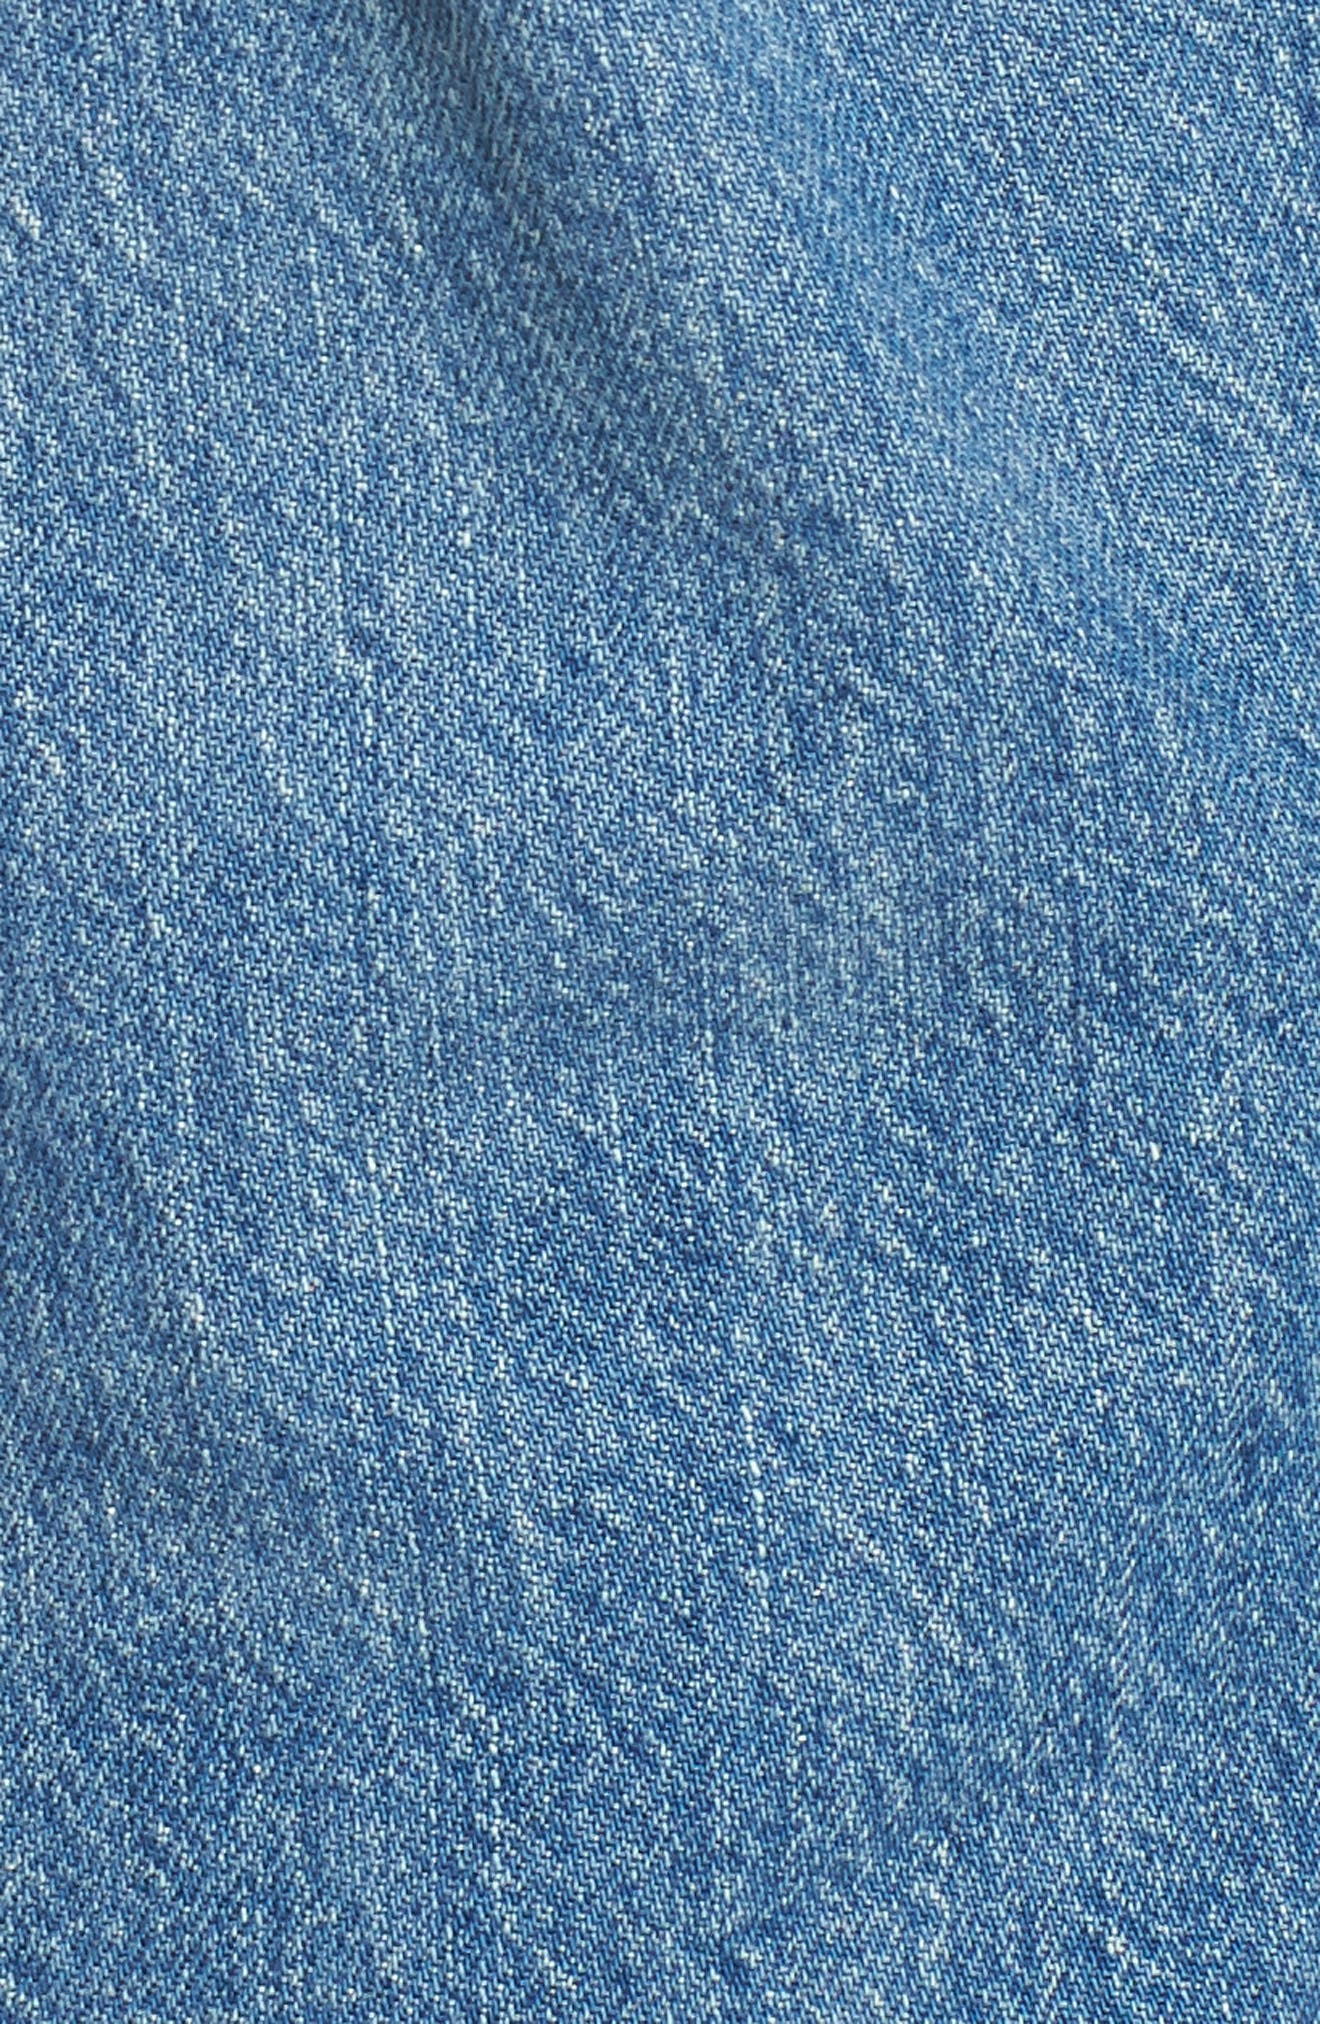 LEVI'S<SUP>®</SUP>,                             501<sup>™</sup> Taper Ripped Boyfriend Jeans,                             Alternate thumbnail 6, color,                             420